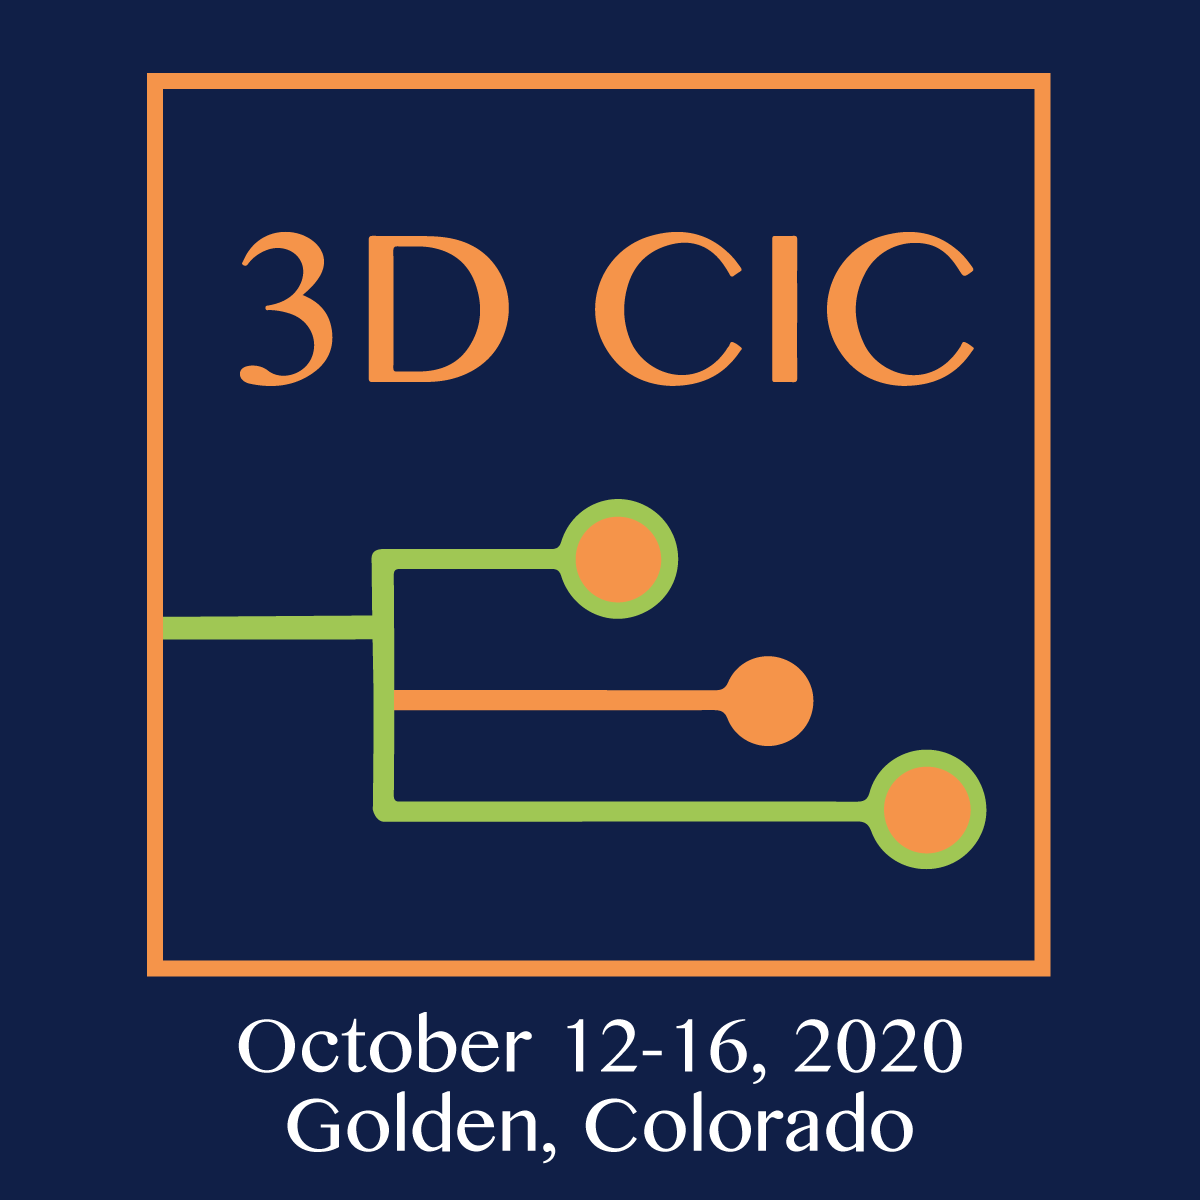 3D CIC Oct 12-16, 2020 in Golden CO